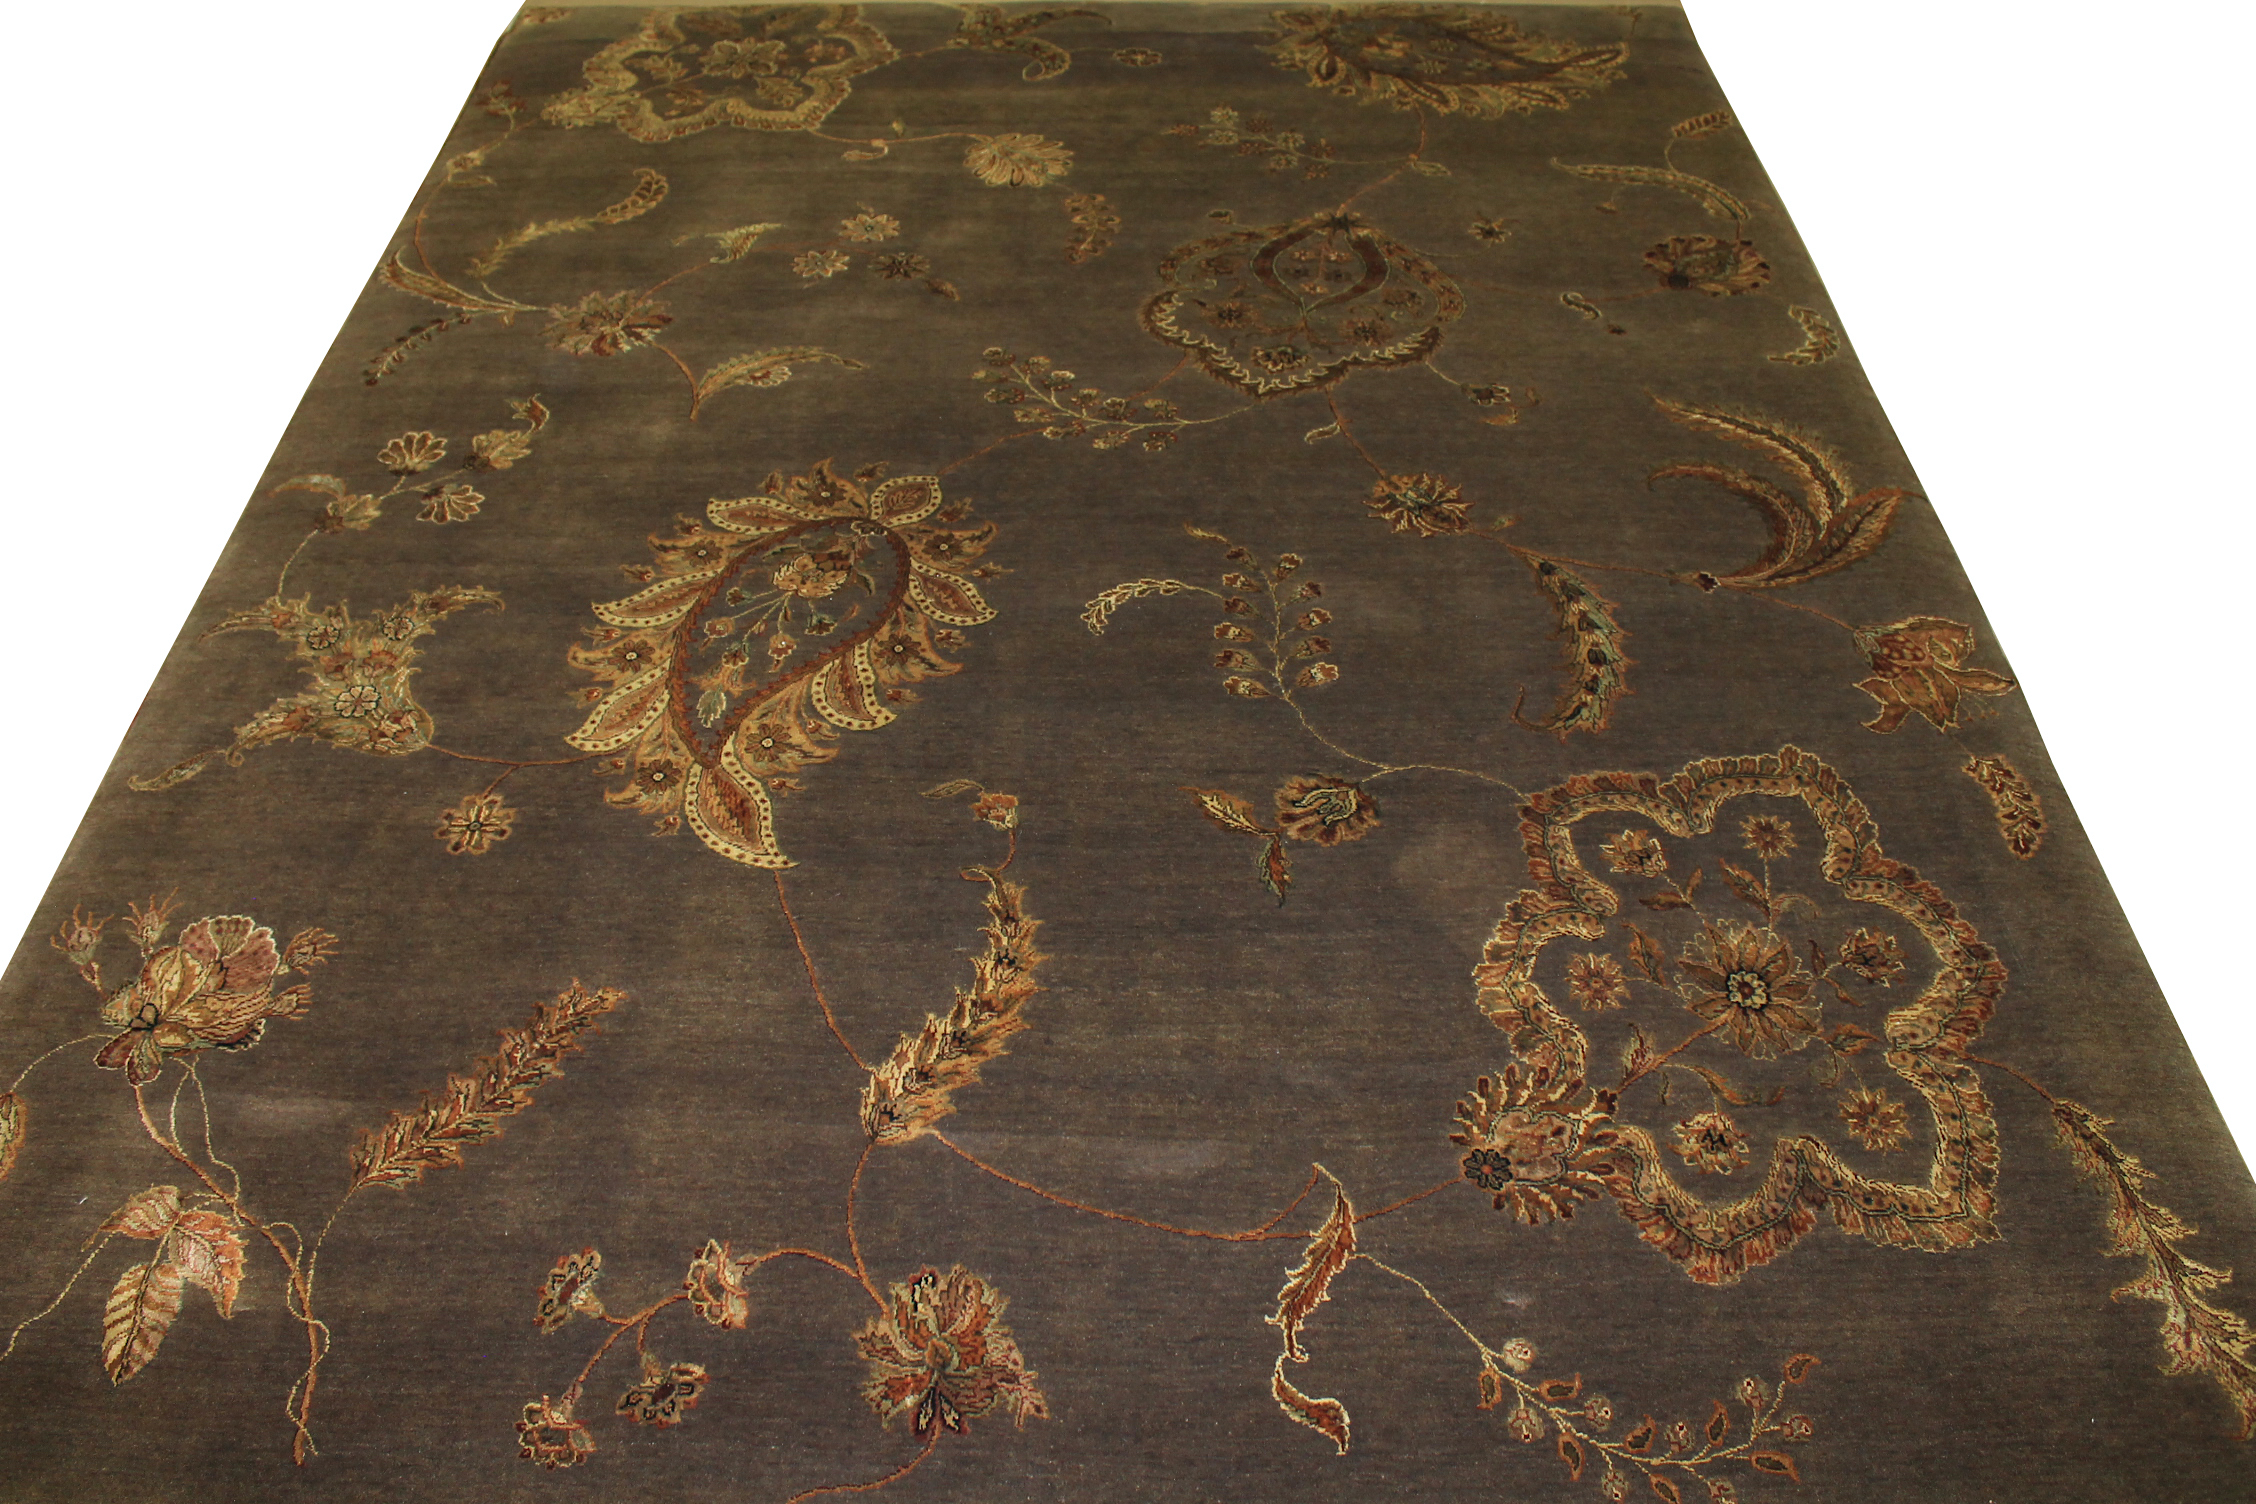 9x12 Silk Flower Hand Knotted Wool Area Rug - MR11260